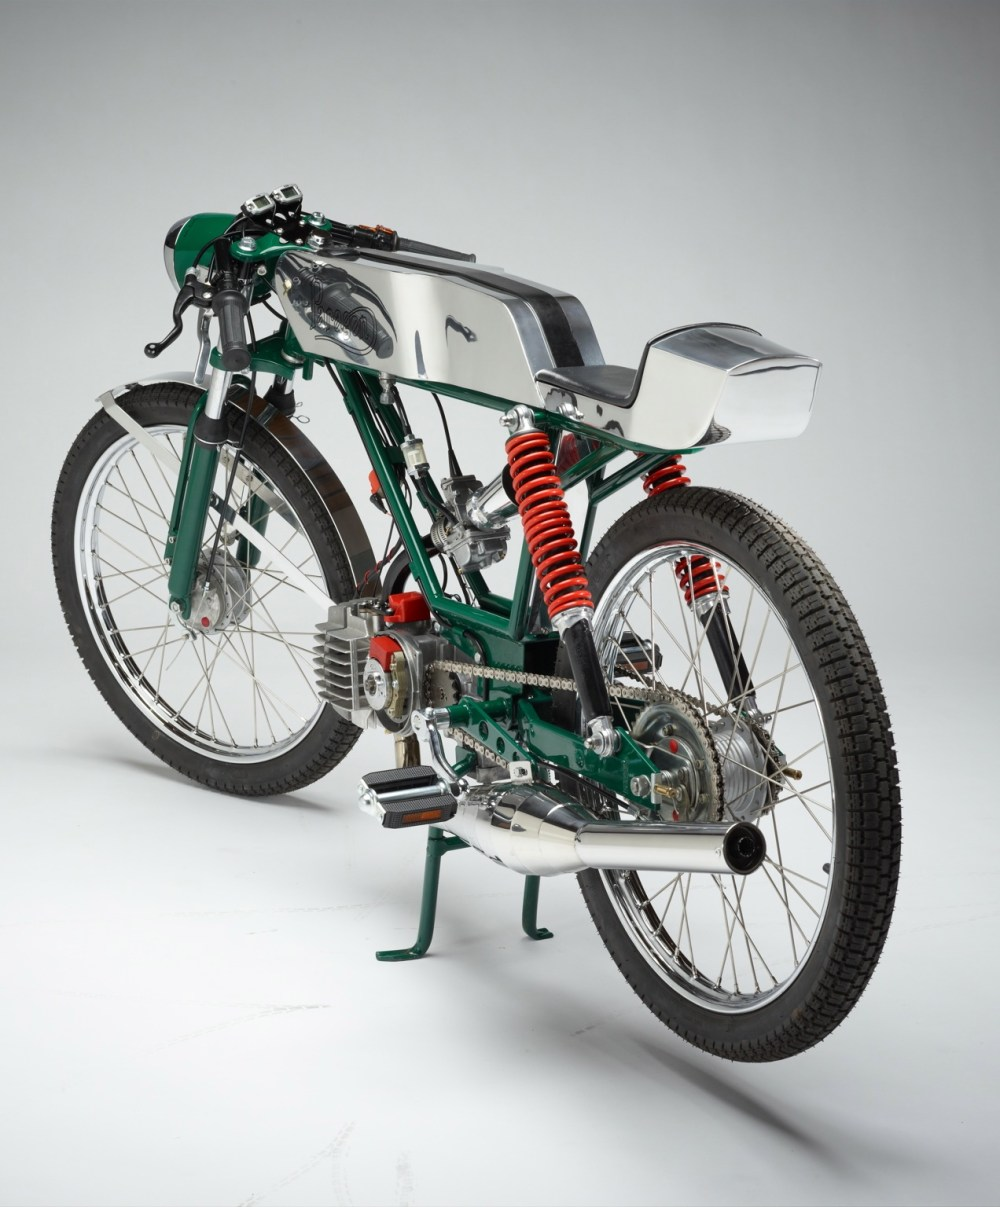 medium resolution of the paragon devin and my first motorcycle build from scratch an 80cc homage to